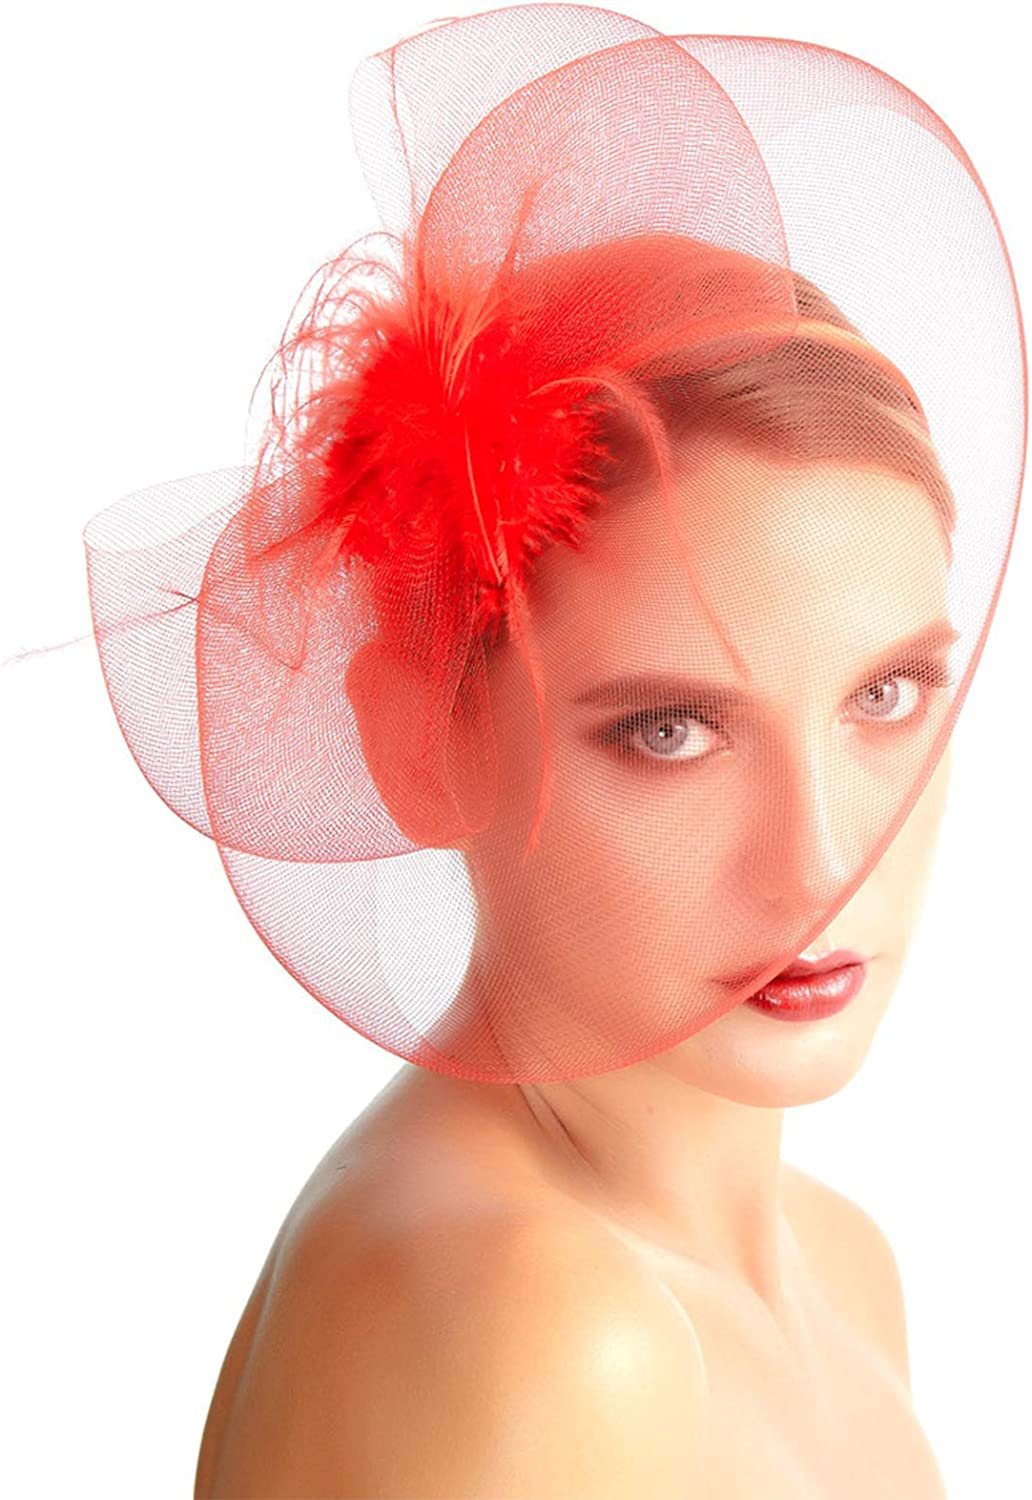 SACASUSA Fascinator Feather Mesh Net Cocktail Hat Headwear Party with Headband